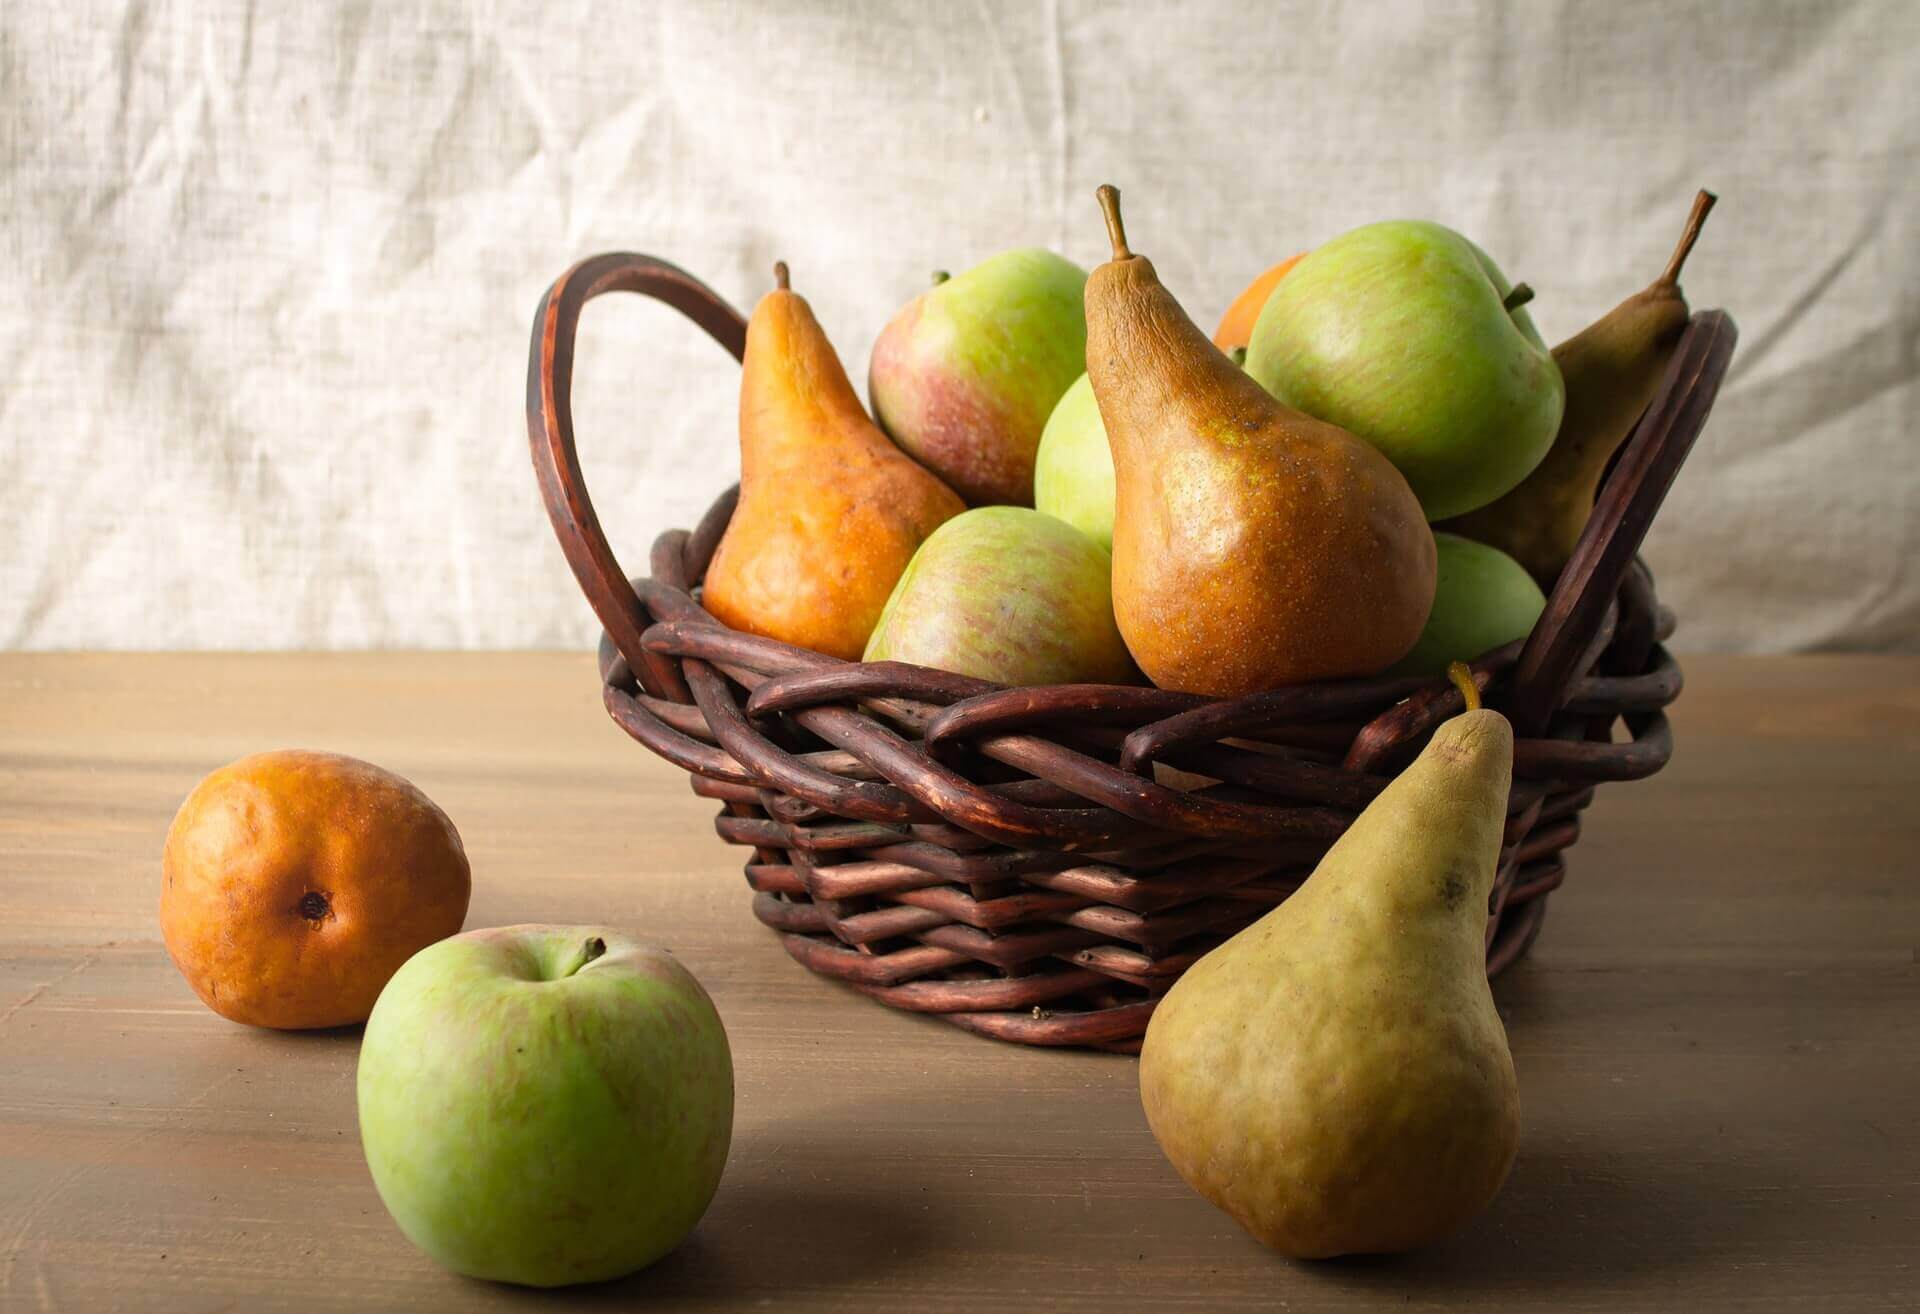 A basket of pears.